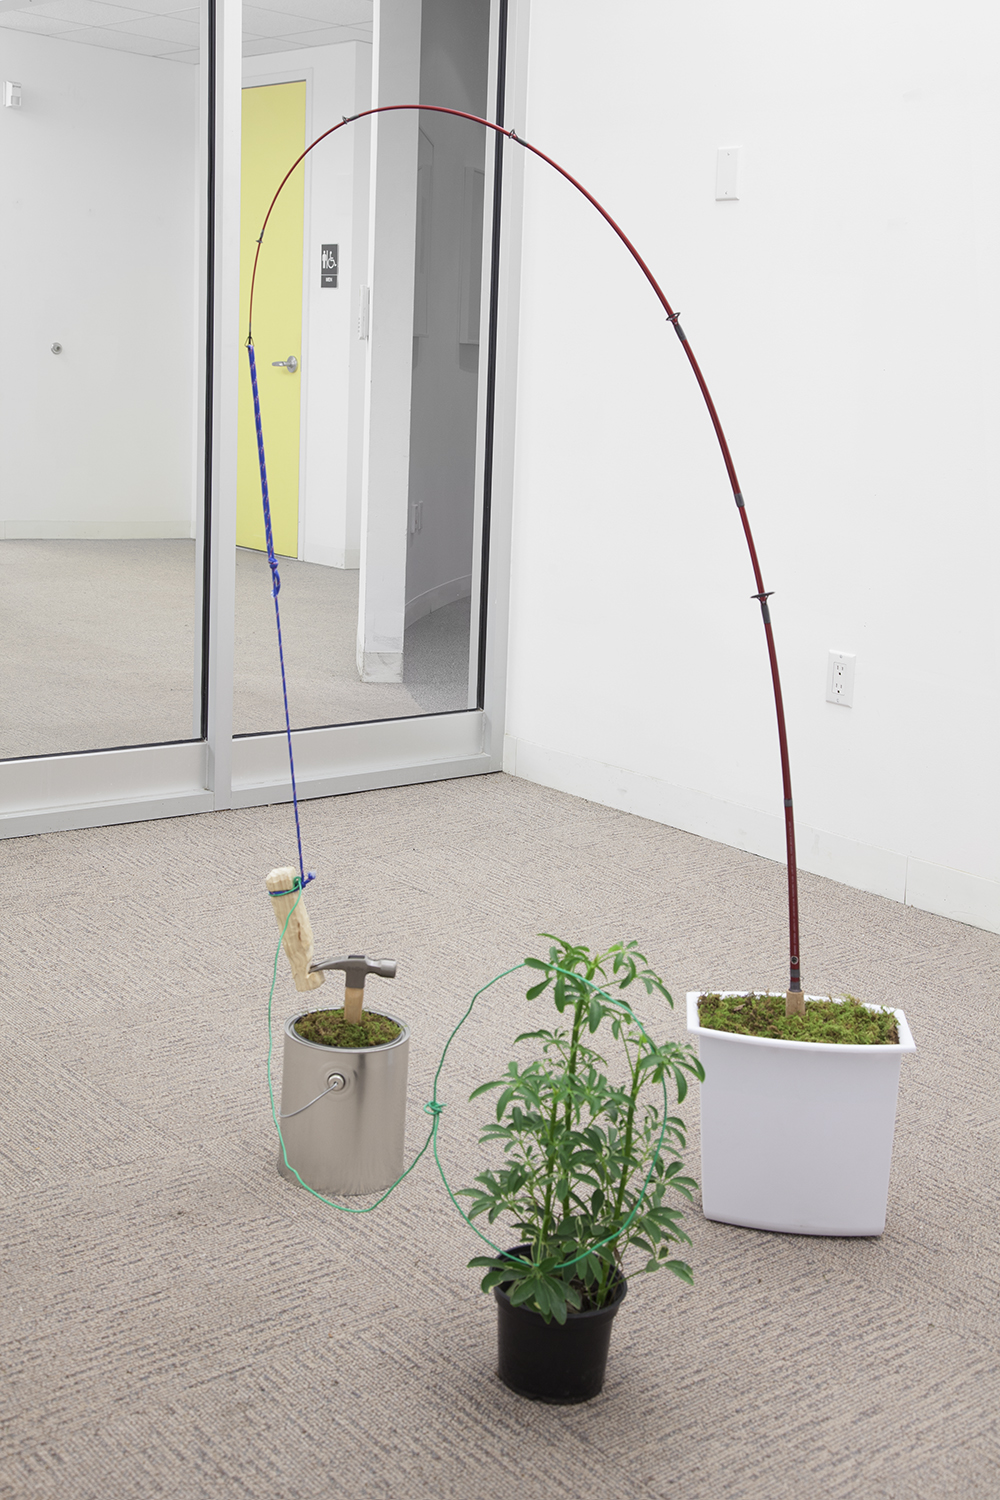 NICK DARMSTAEDTER   Vicki Vallencourt  , 2013   Fishing rod, hammer, plant, rope, wire and moss in buckets   33 x 55 x 24 inches